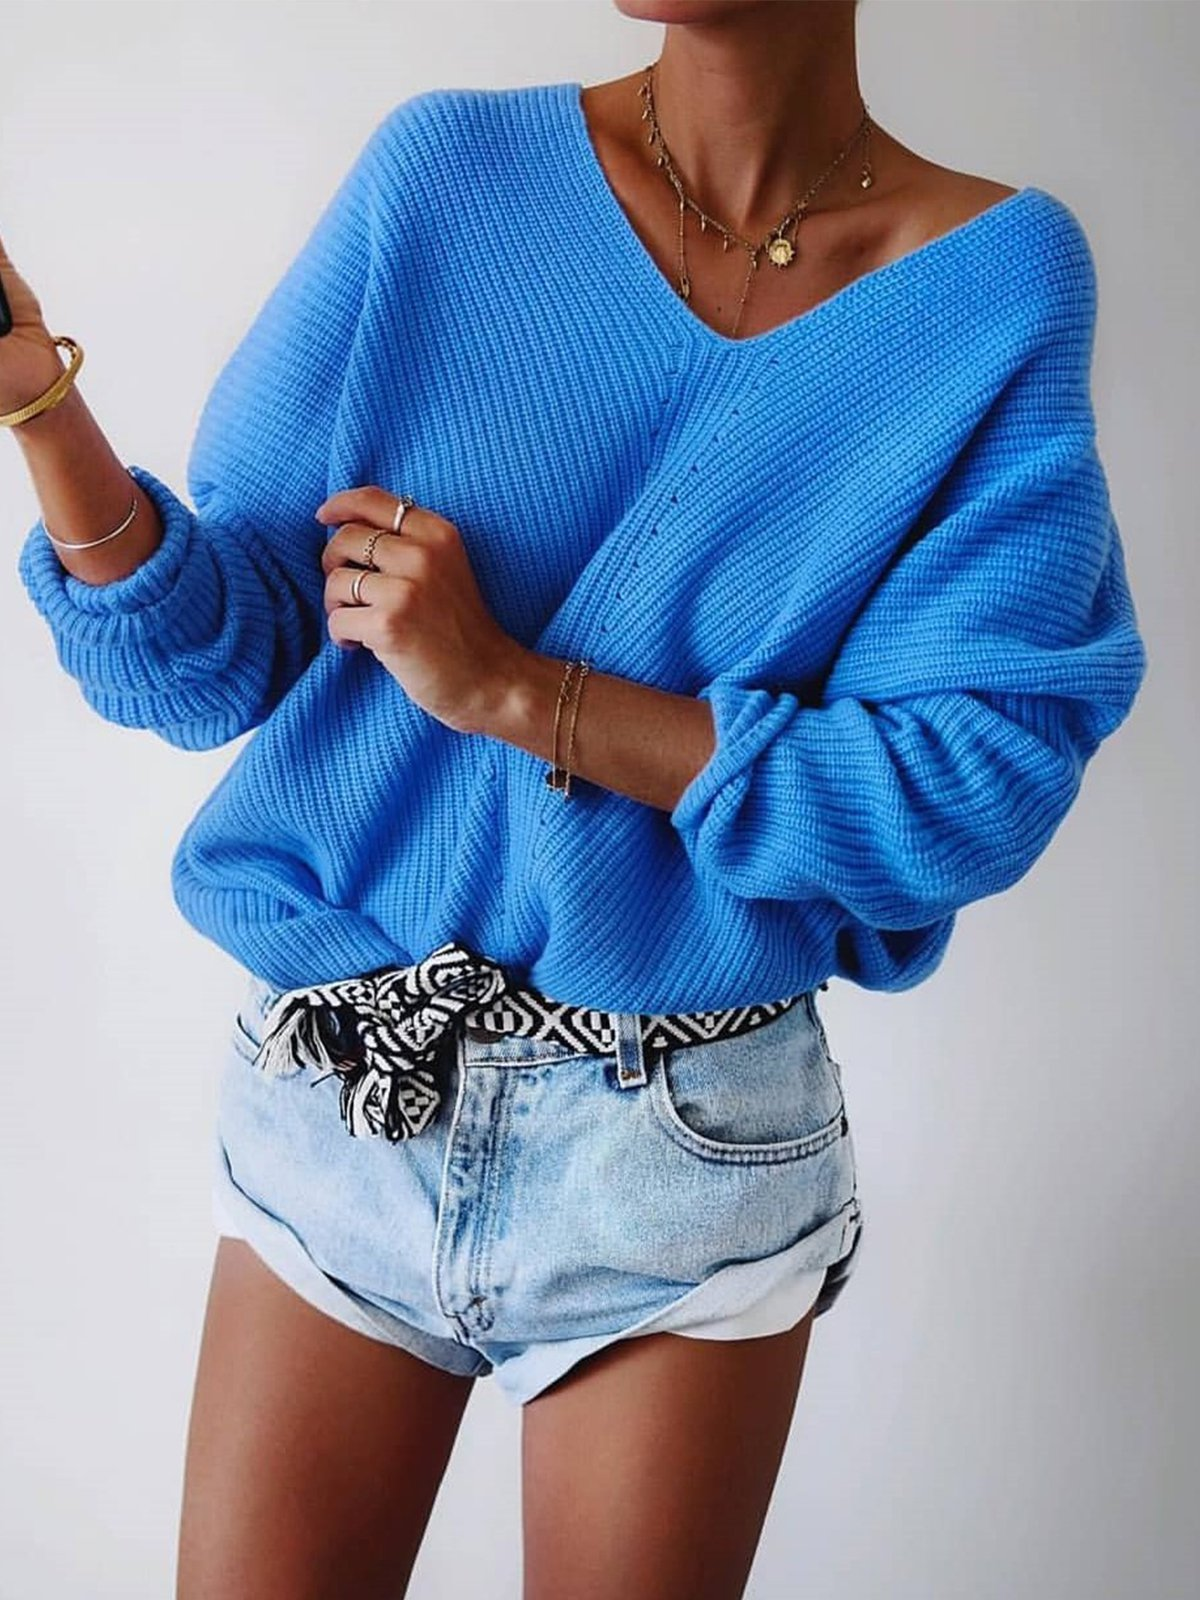 Autumn V-neck loose knit sweater